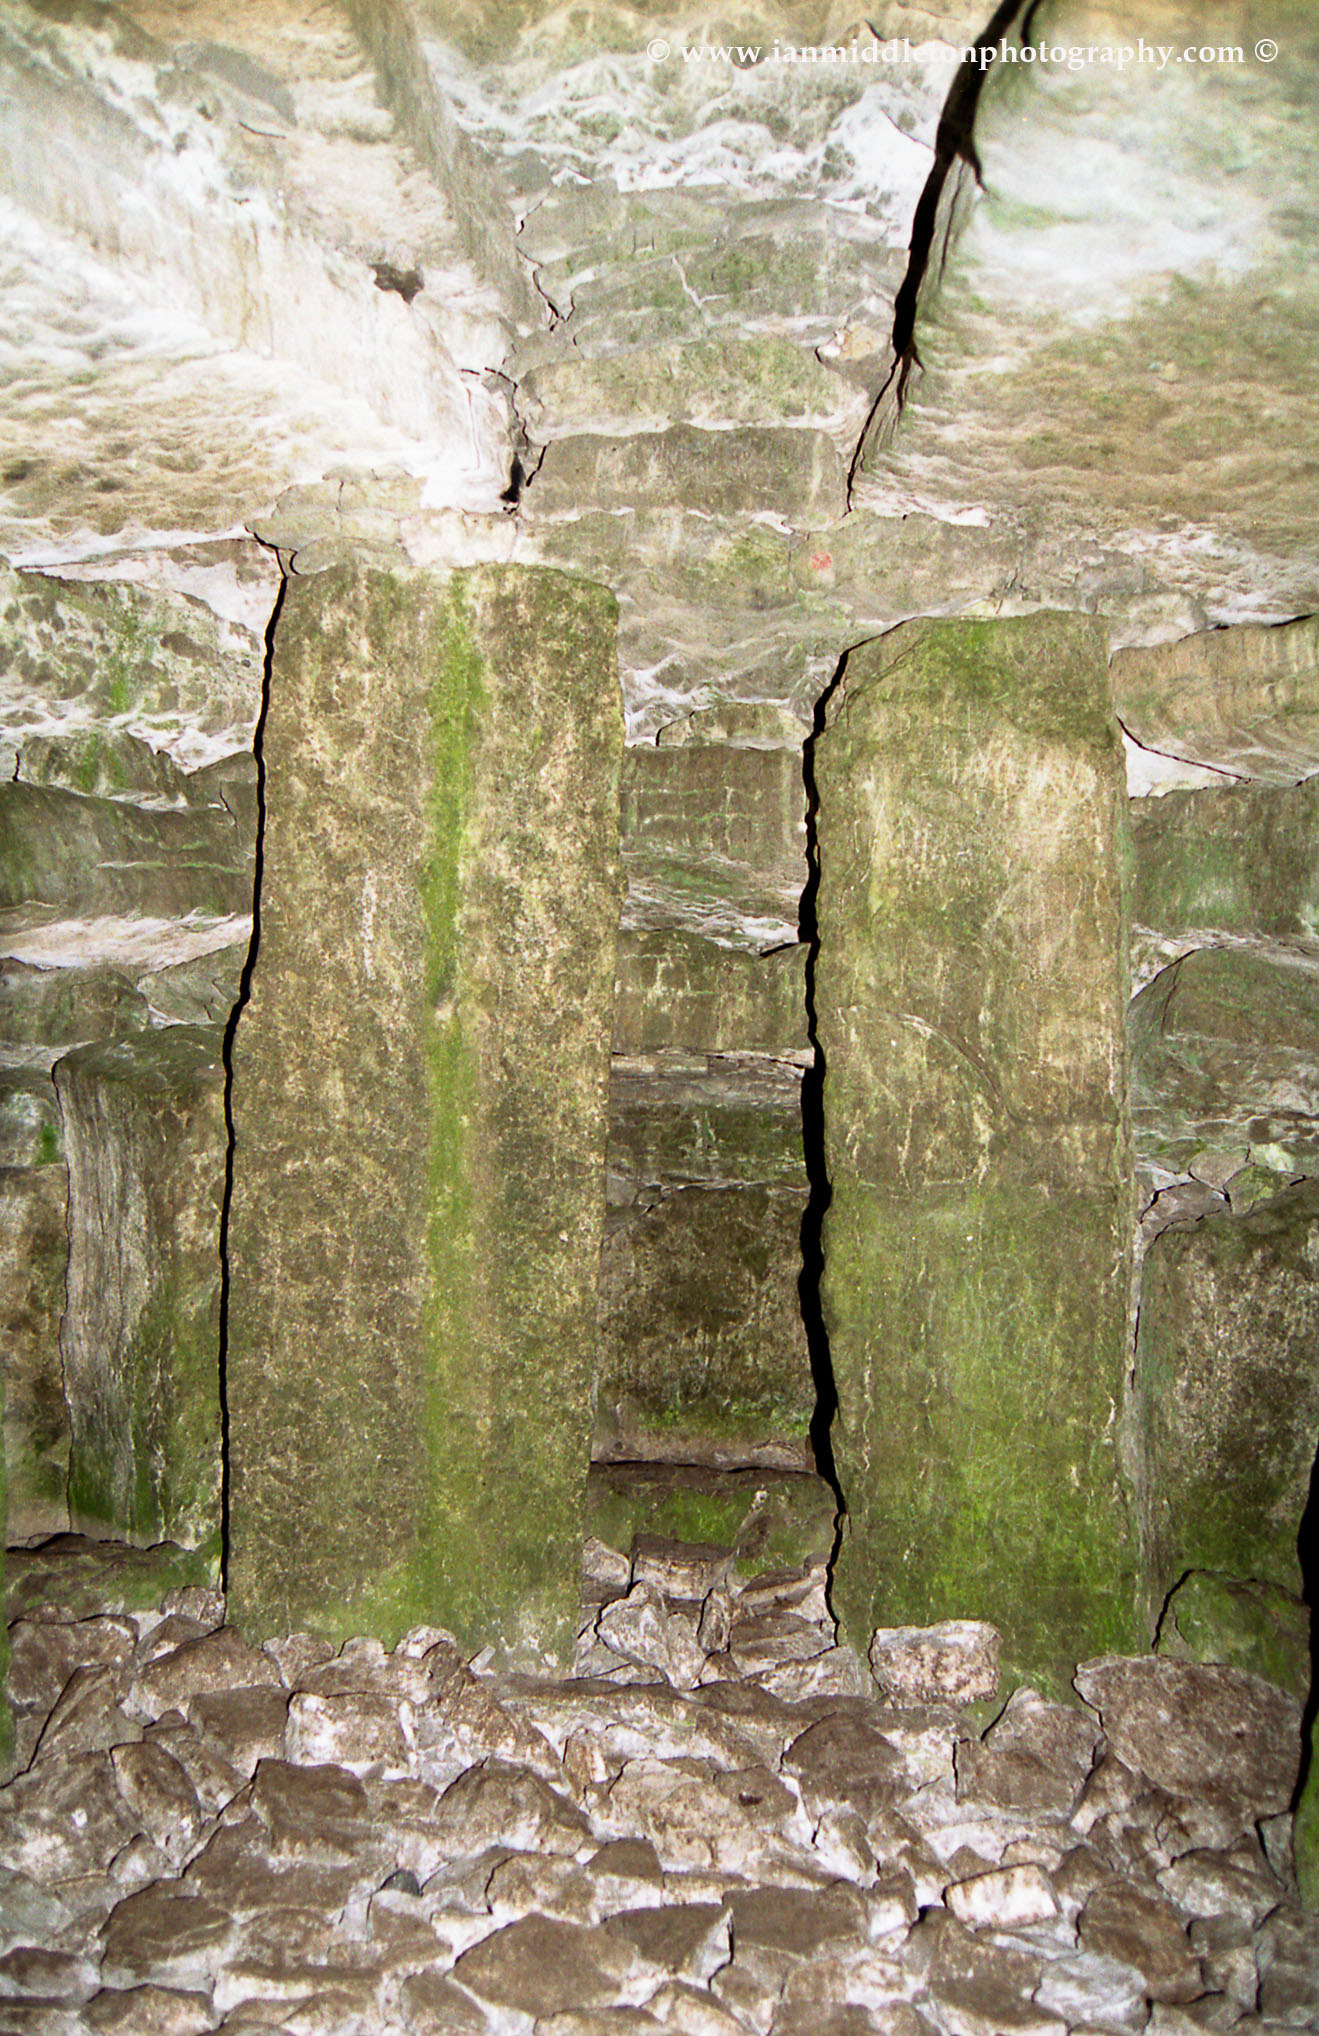 Inside a megalithic burial cairn at Carrowkeel.